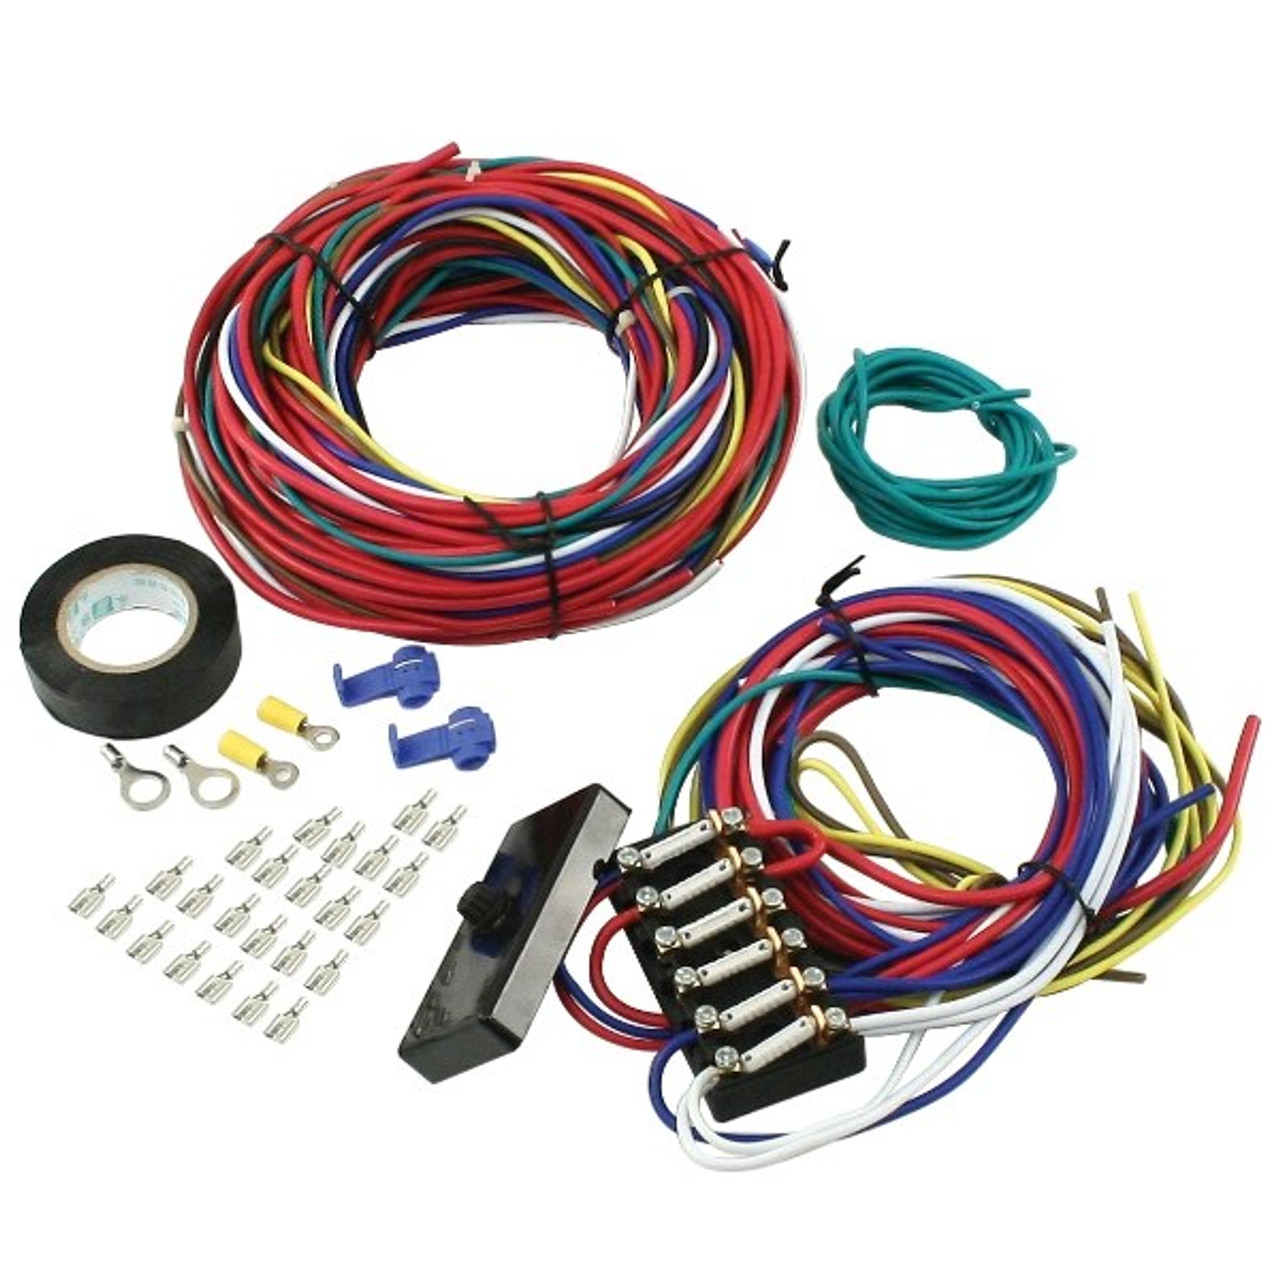 vw universal wiring harness   complete wiring kit  moore parts source